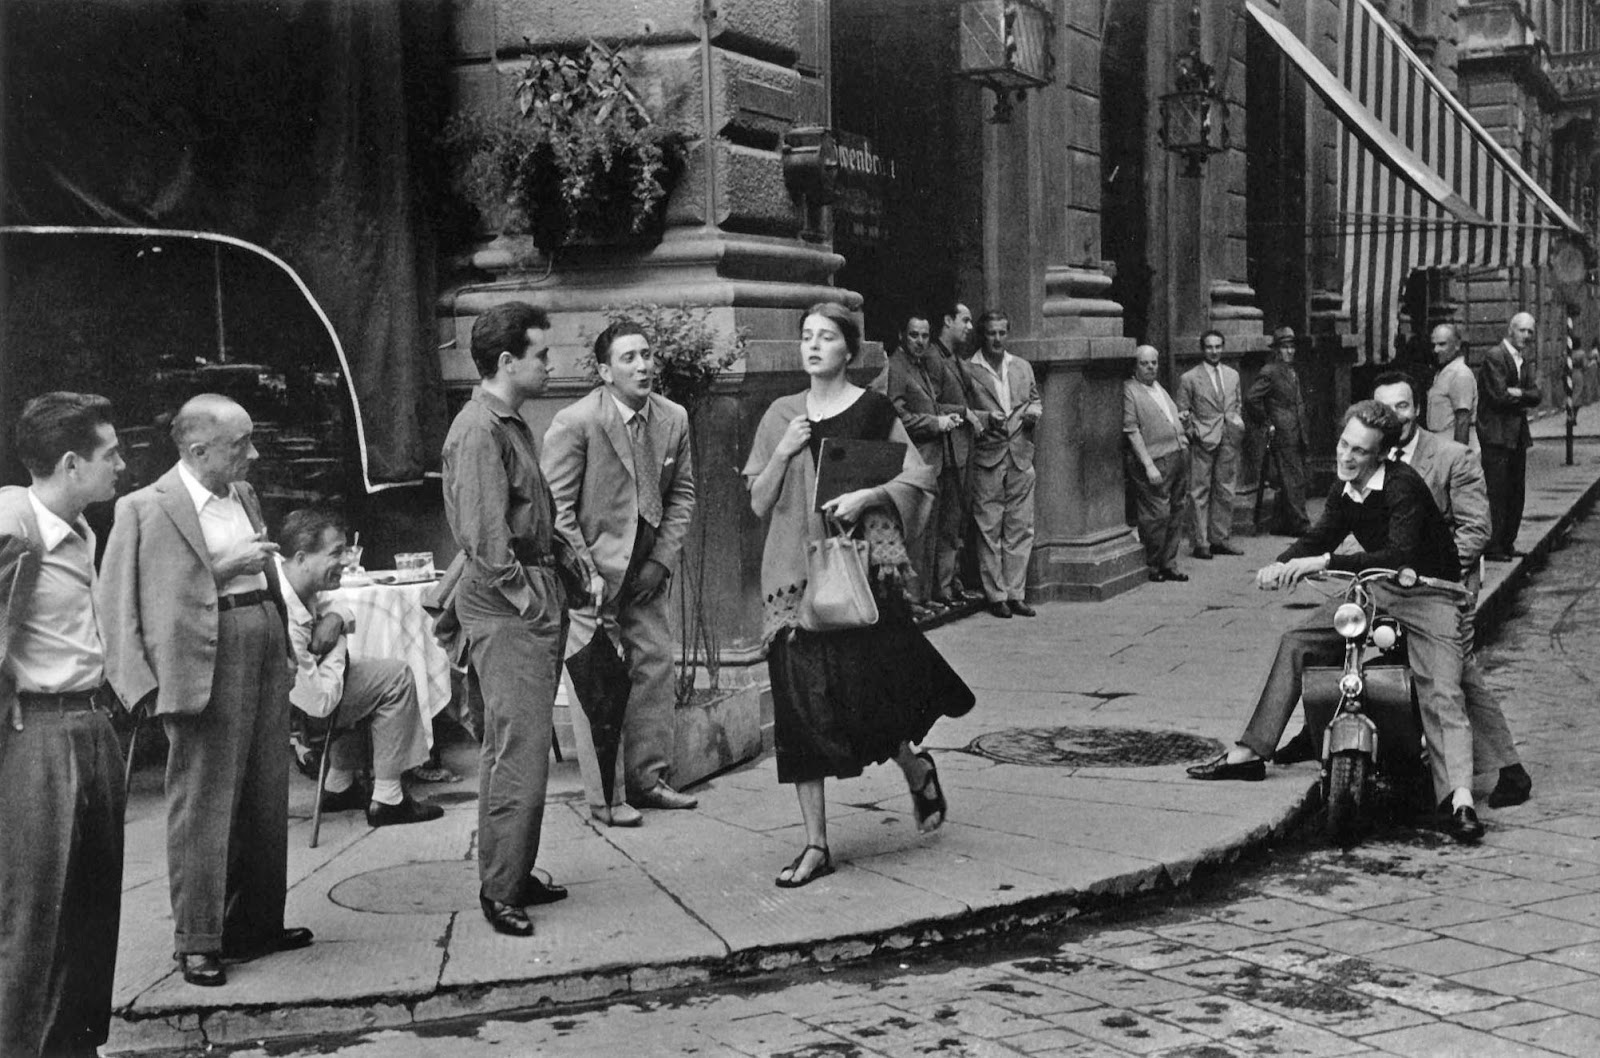 Italian American: History In Photos: Ruth Orkin